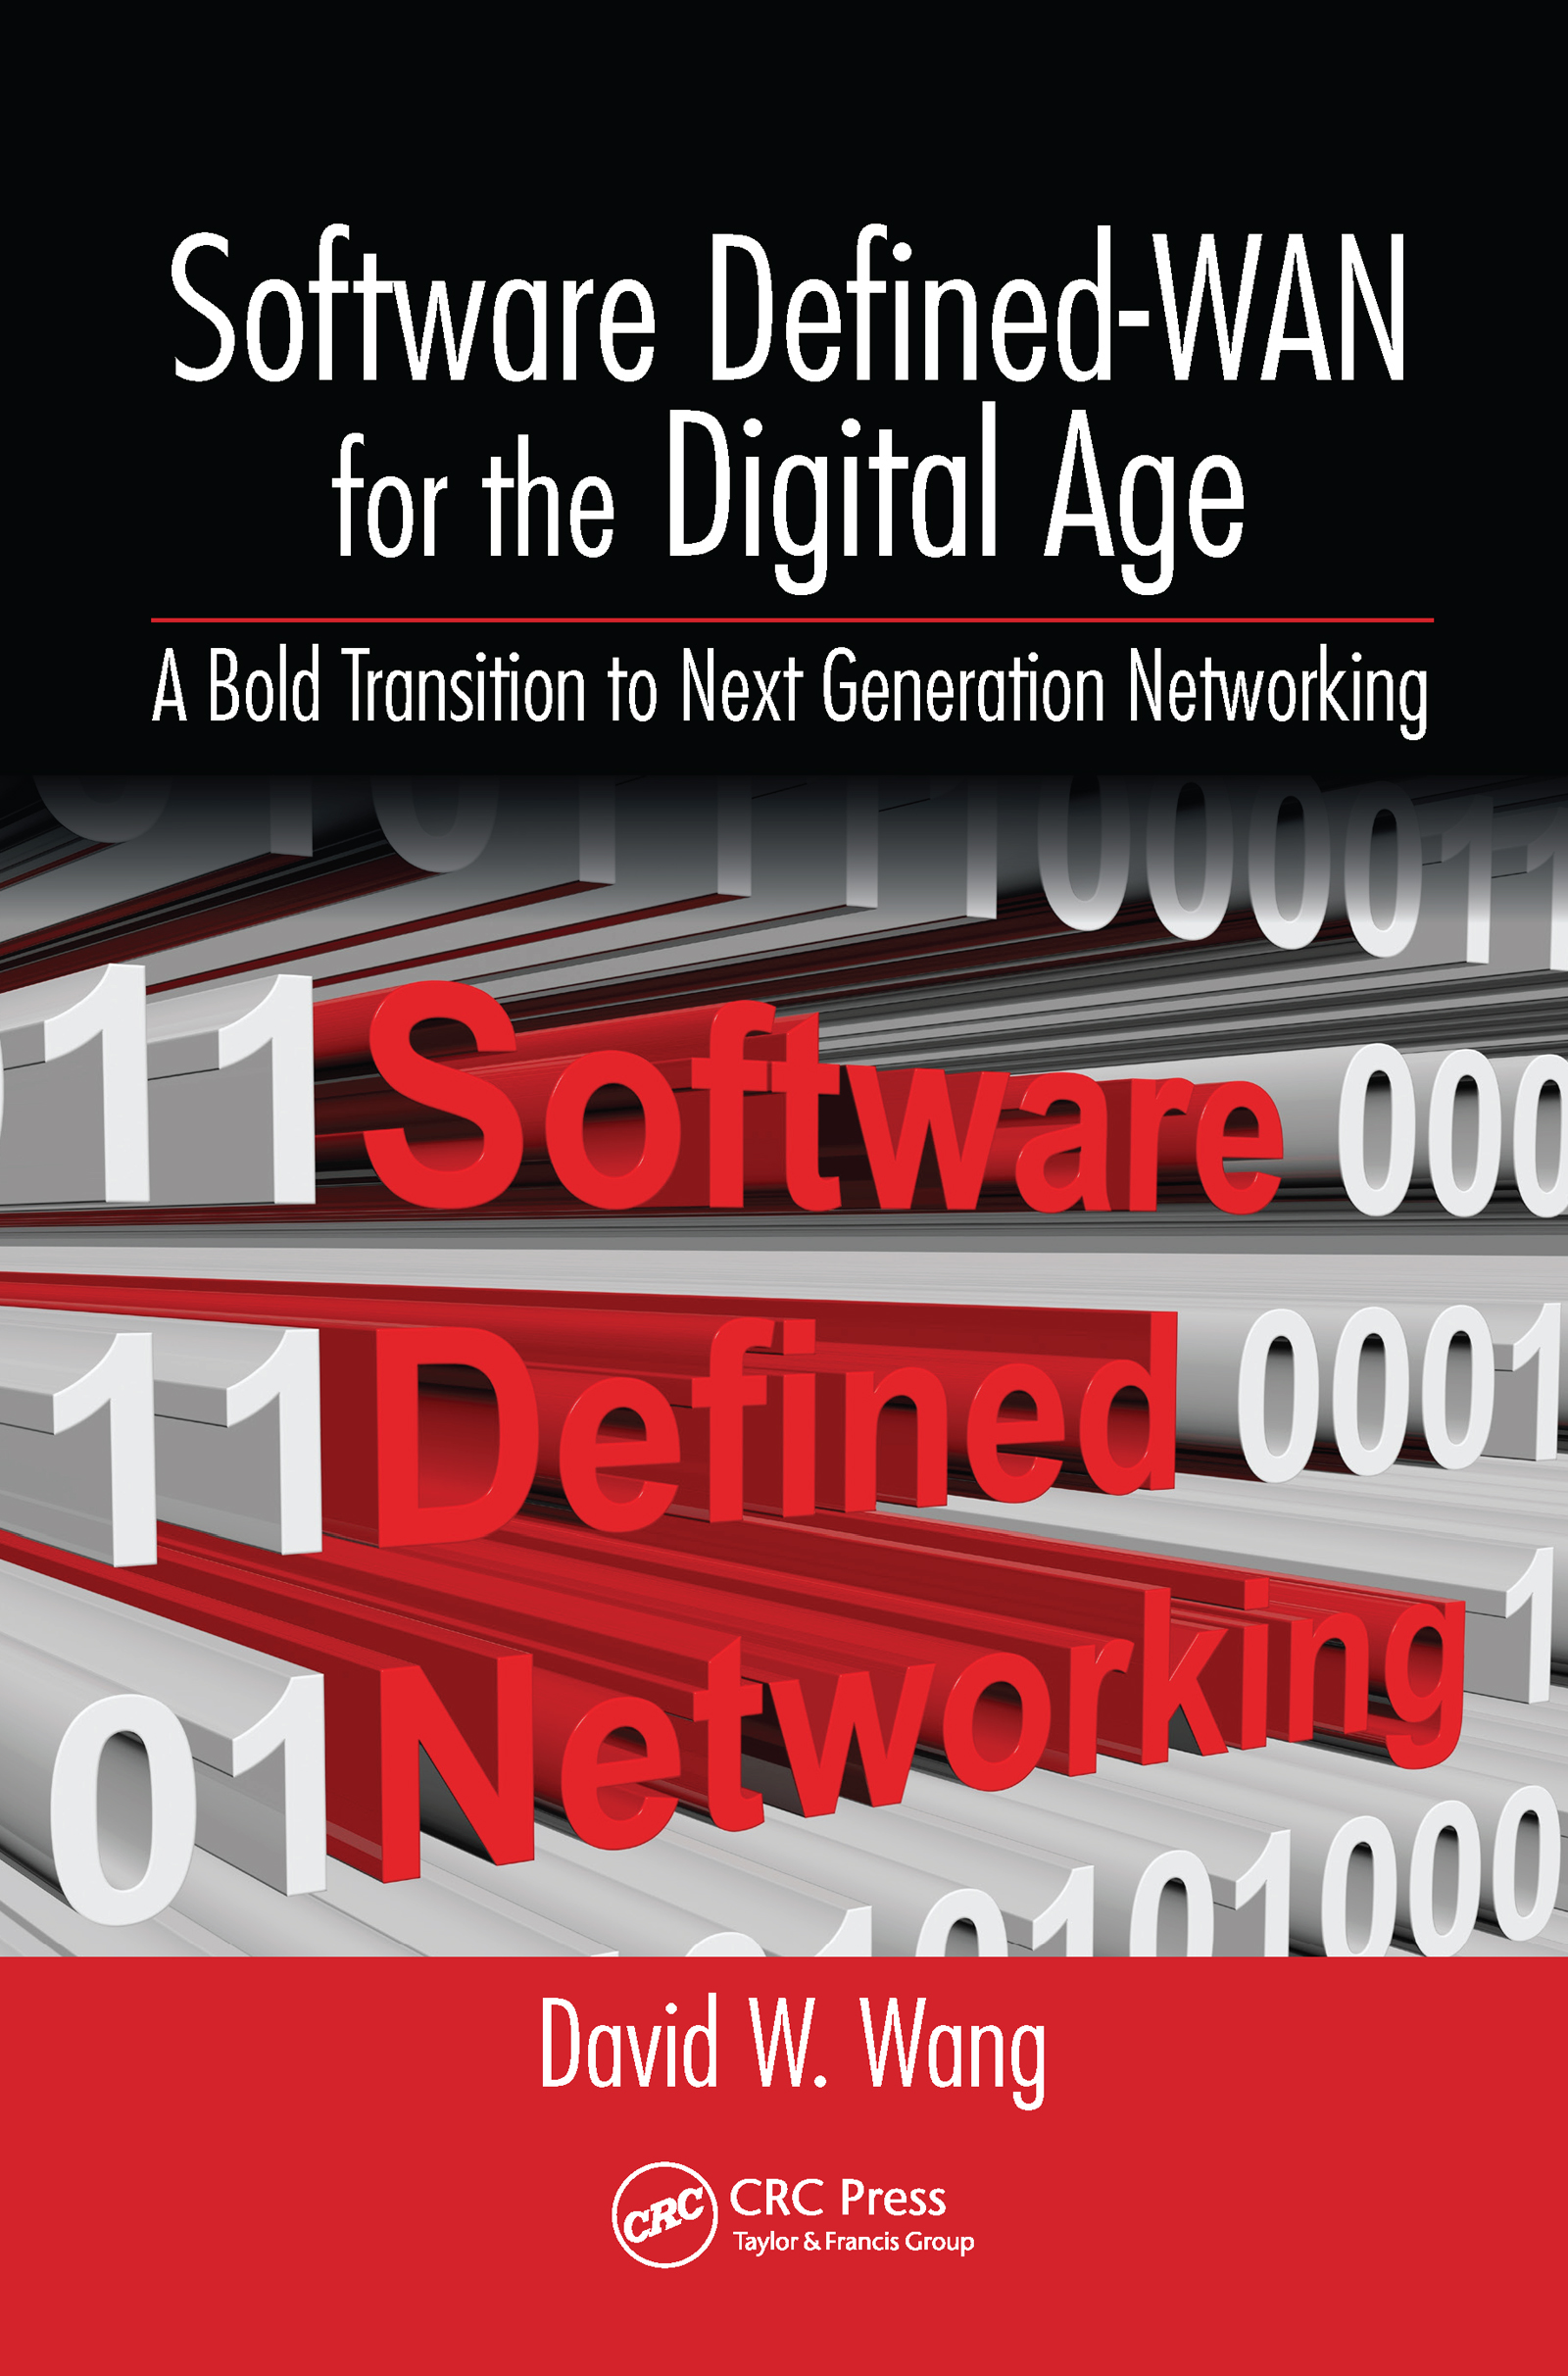 Software Defined-WAN for the Digital Age